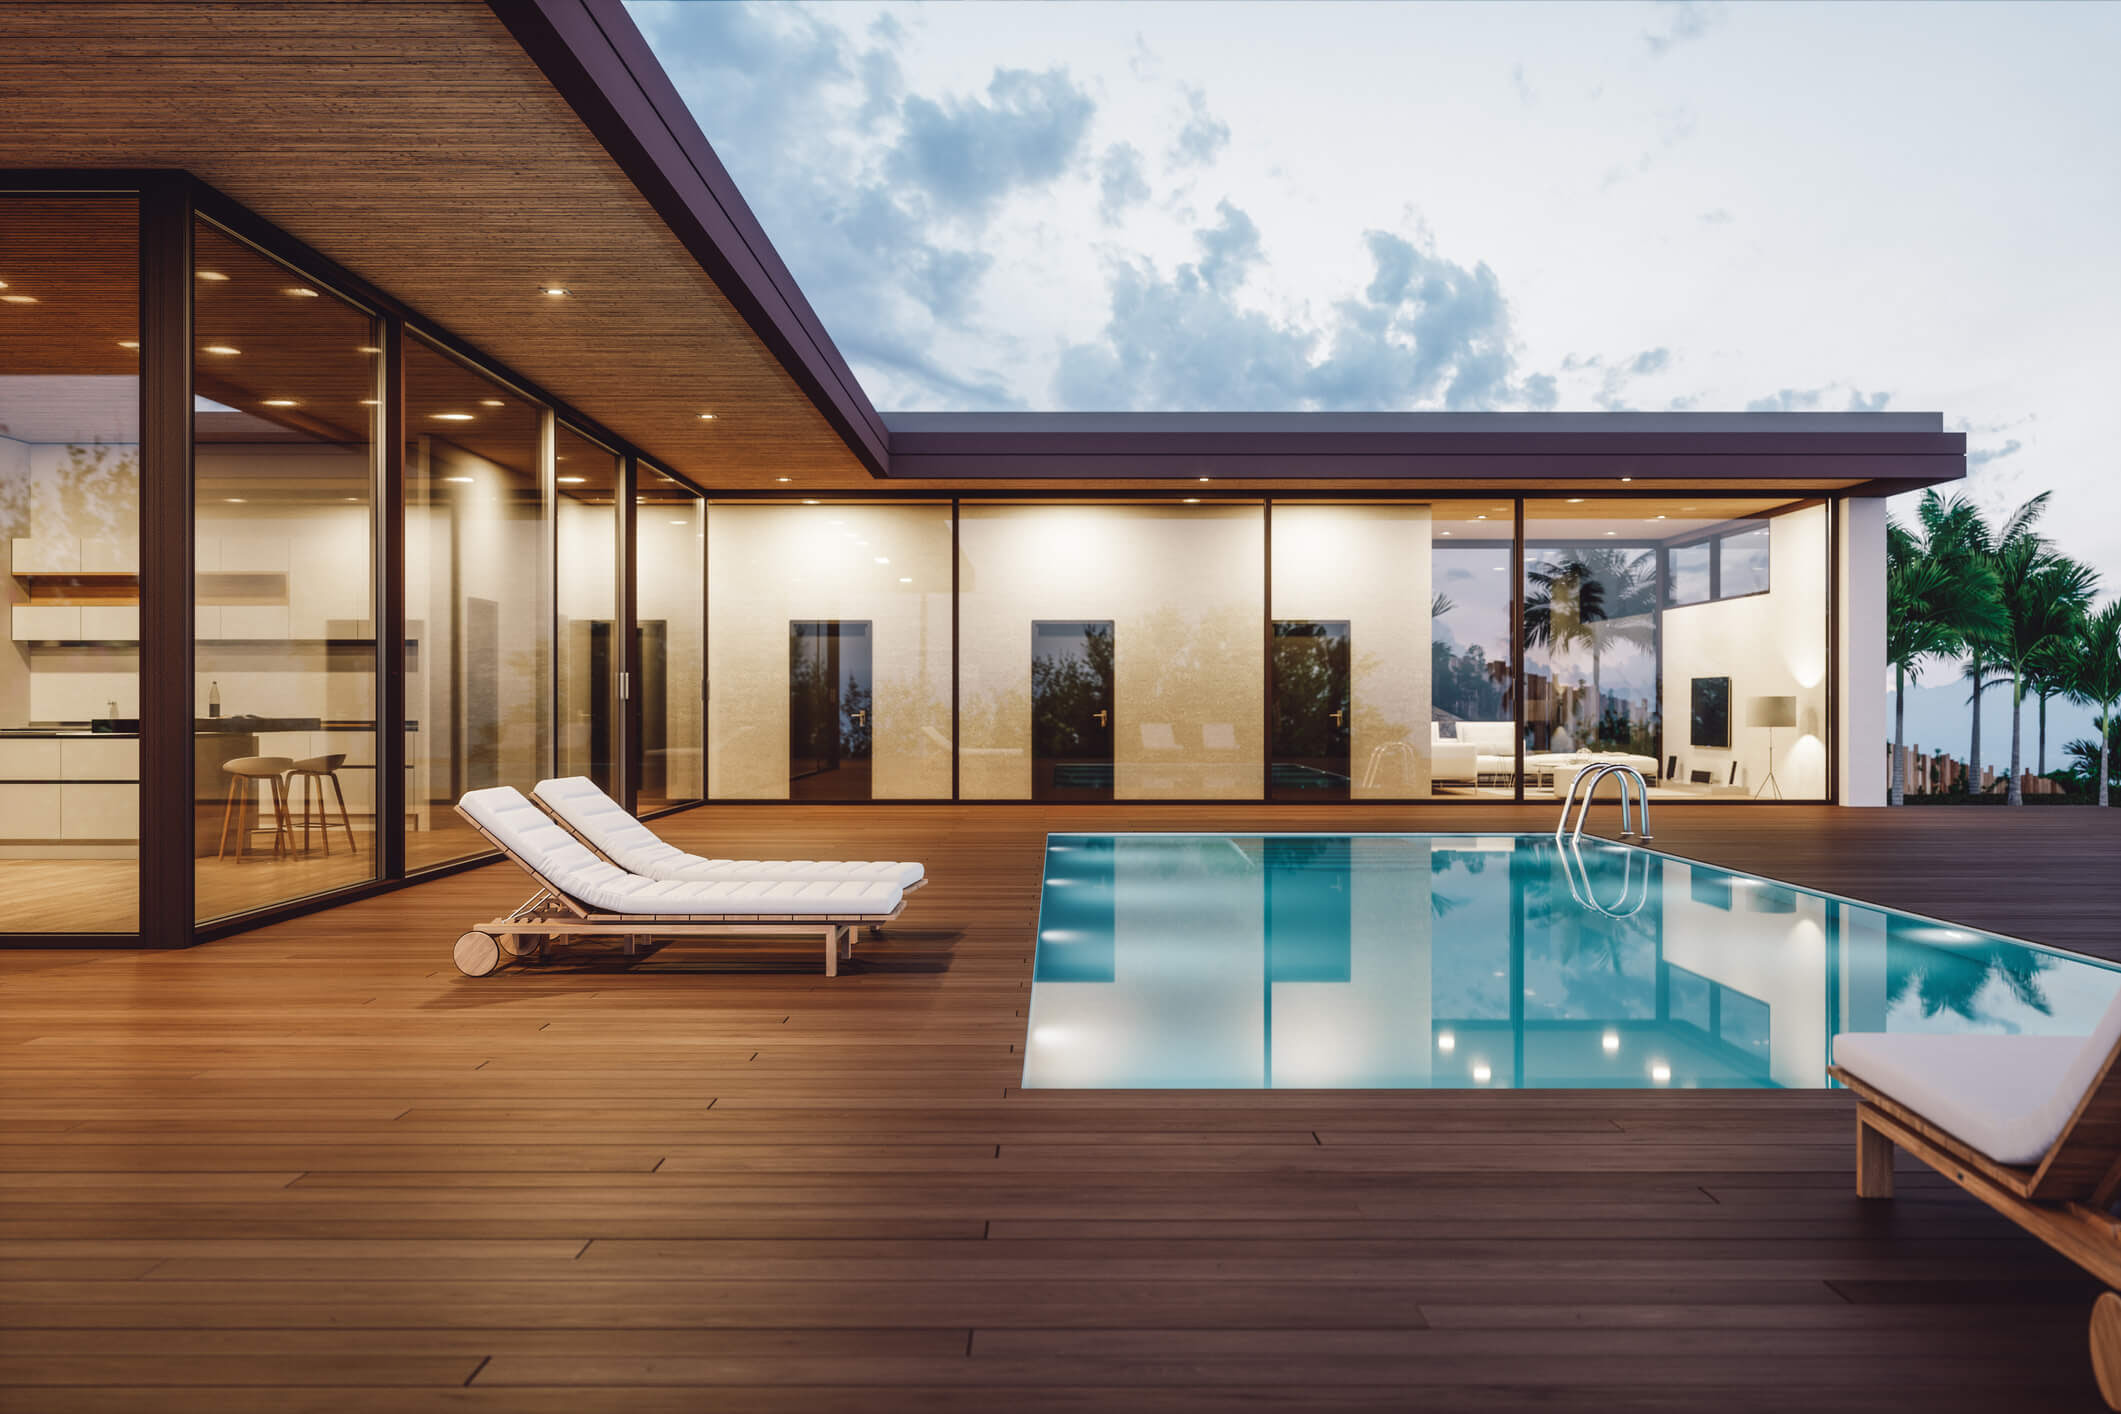 Pool Deck Ideas: 21 Best Ideas & Designs for Your New Deck